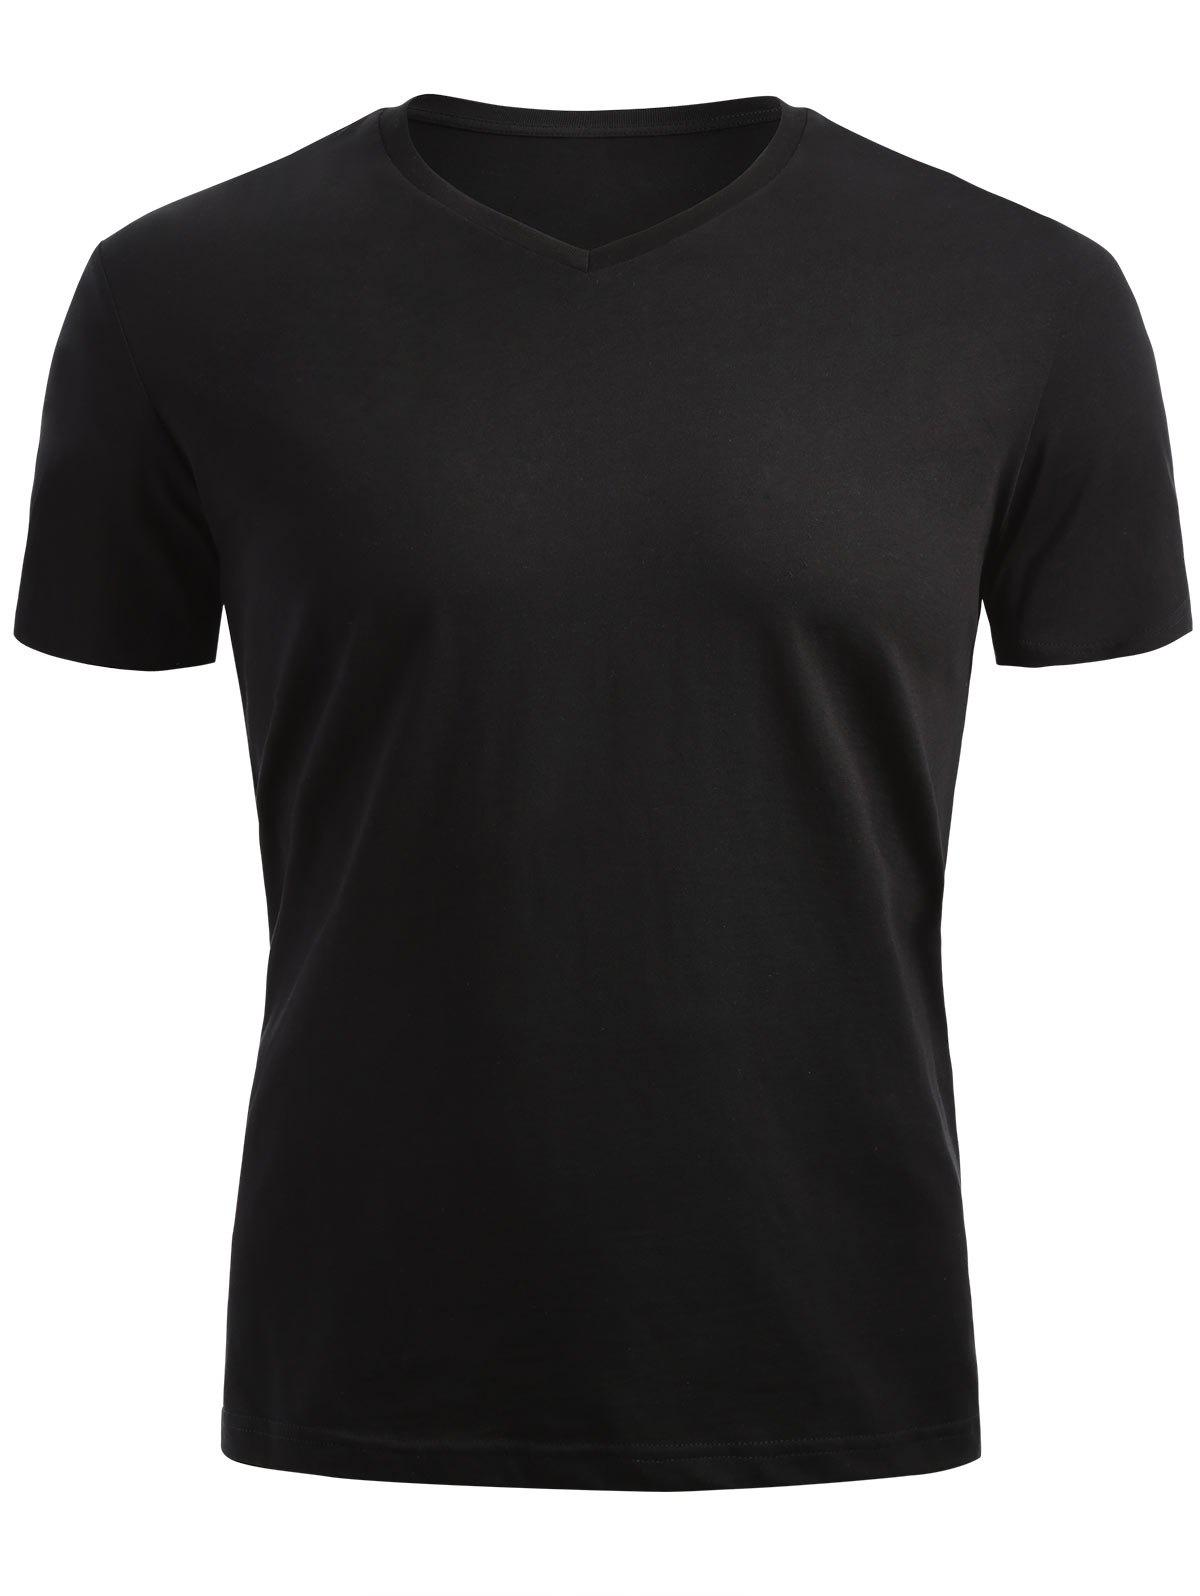 V Neck Short Sleeve T-shirt - BLACK L